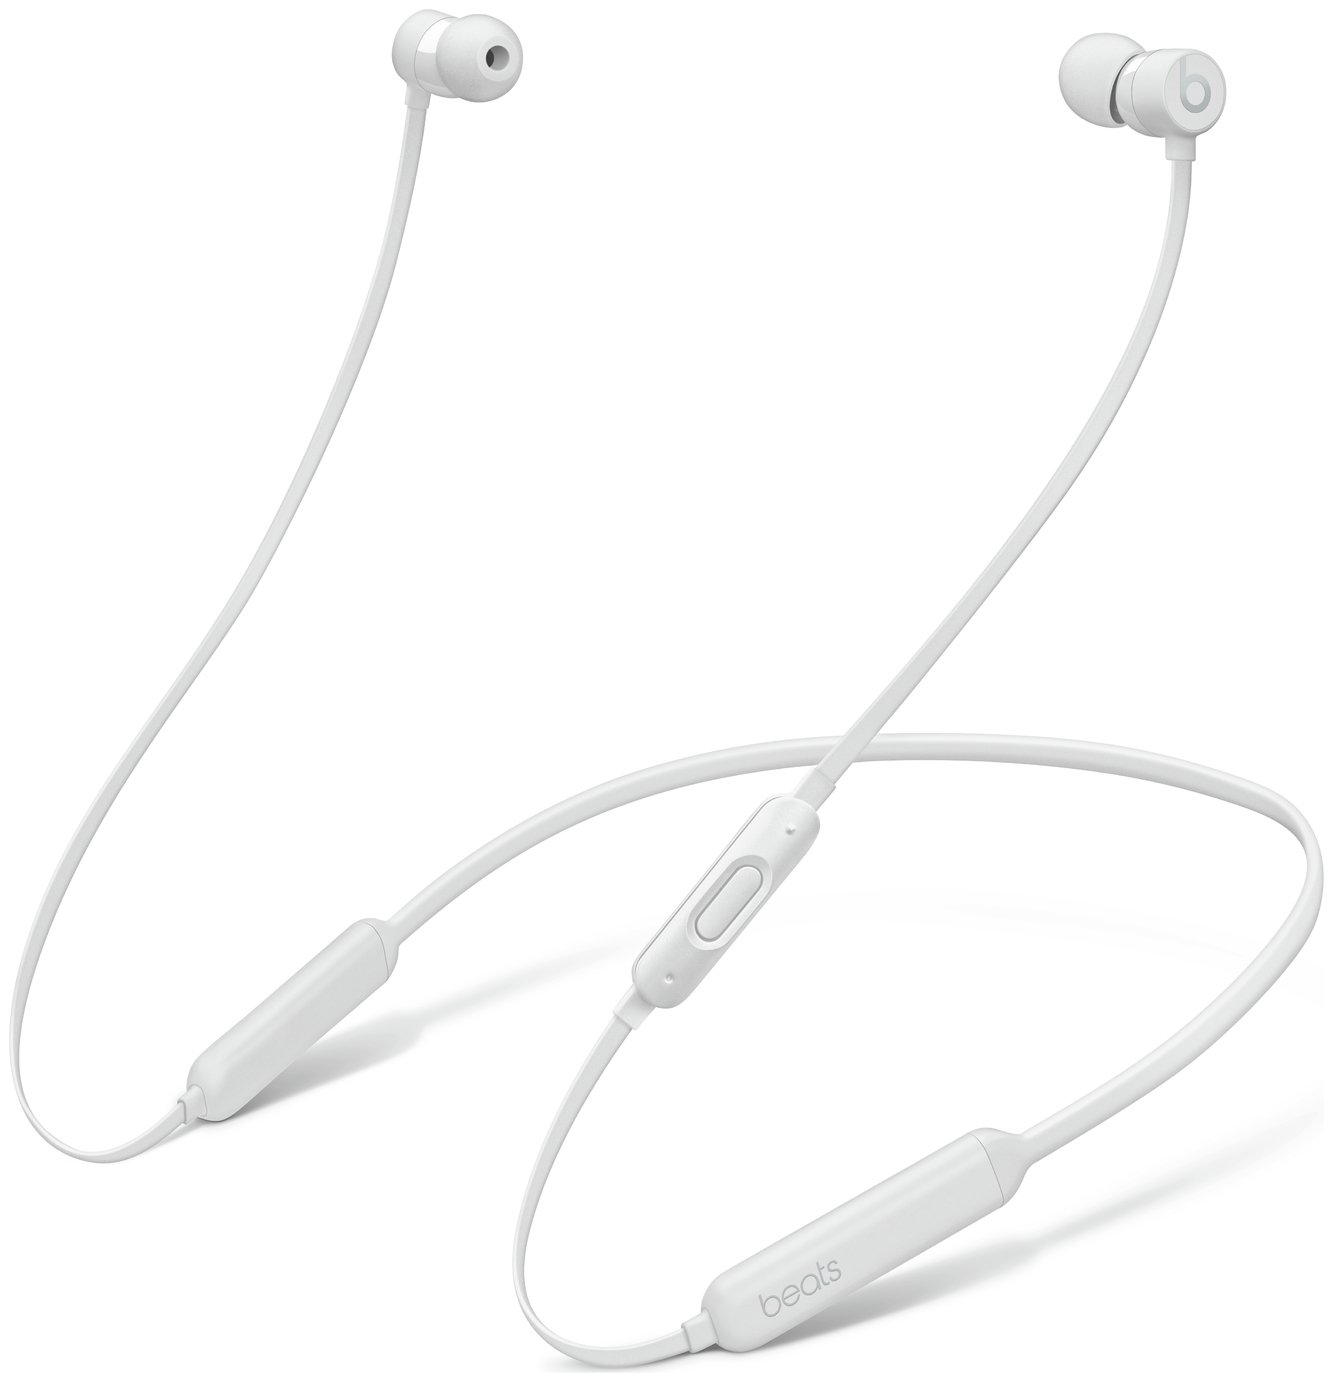 Image of Beats X In-Ear Wireless Earphones - White